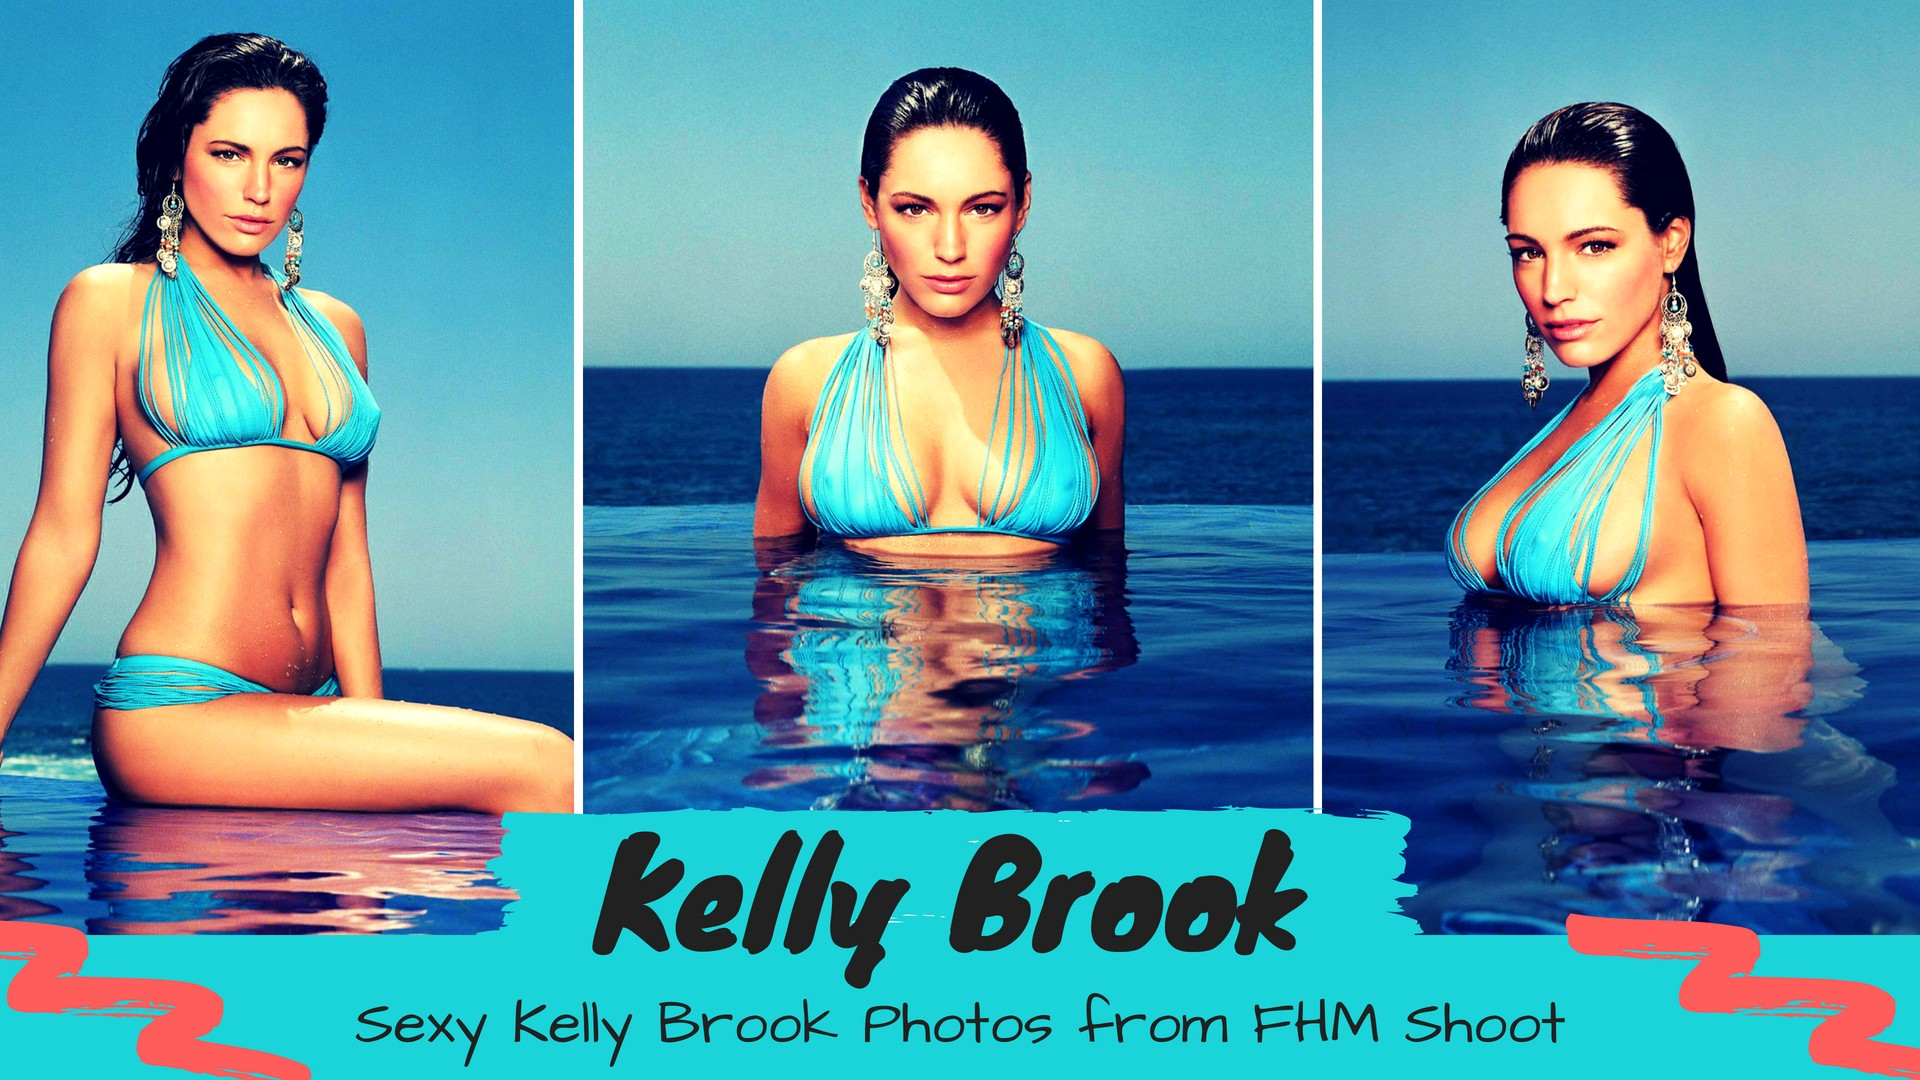 Sexy Kelly Brook - FHM Magazine Photo Shoot - Sexy Actress Pictures | Hot Actress Pictures - ActressSnaps.com